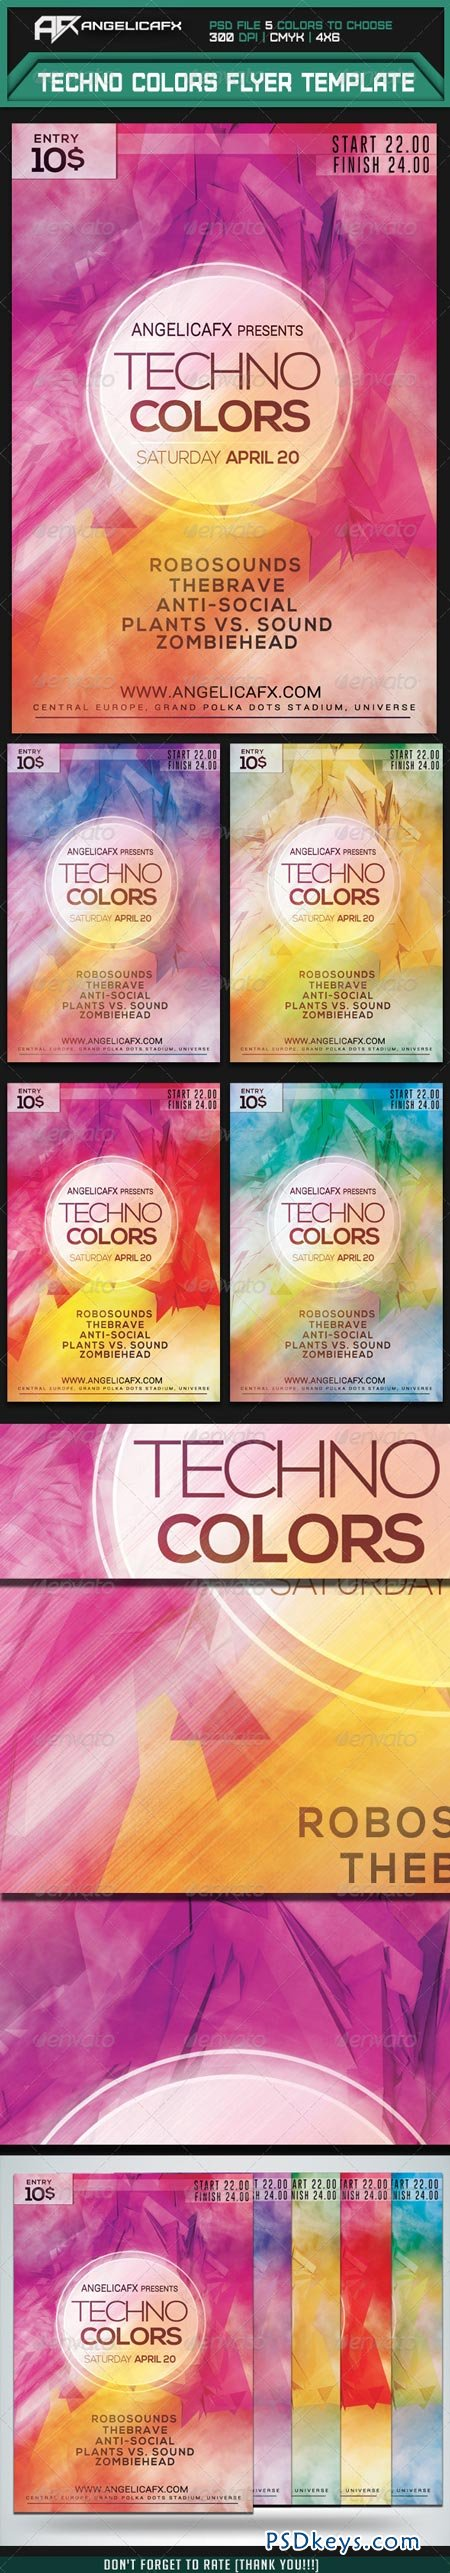 Techno Colors Flyer Template 7415558